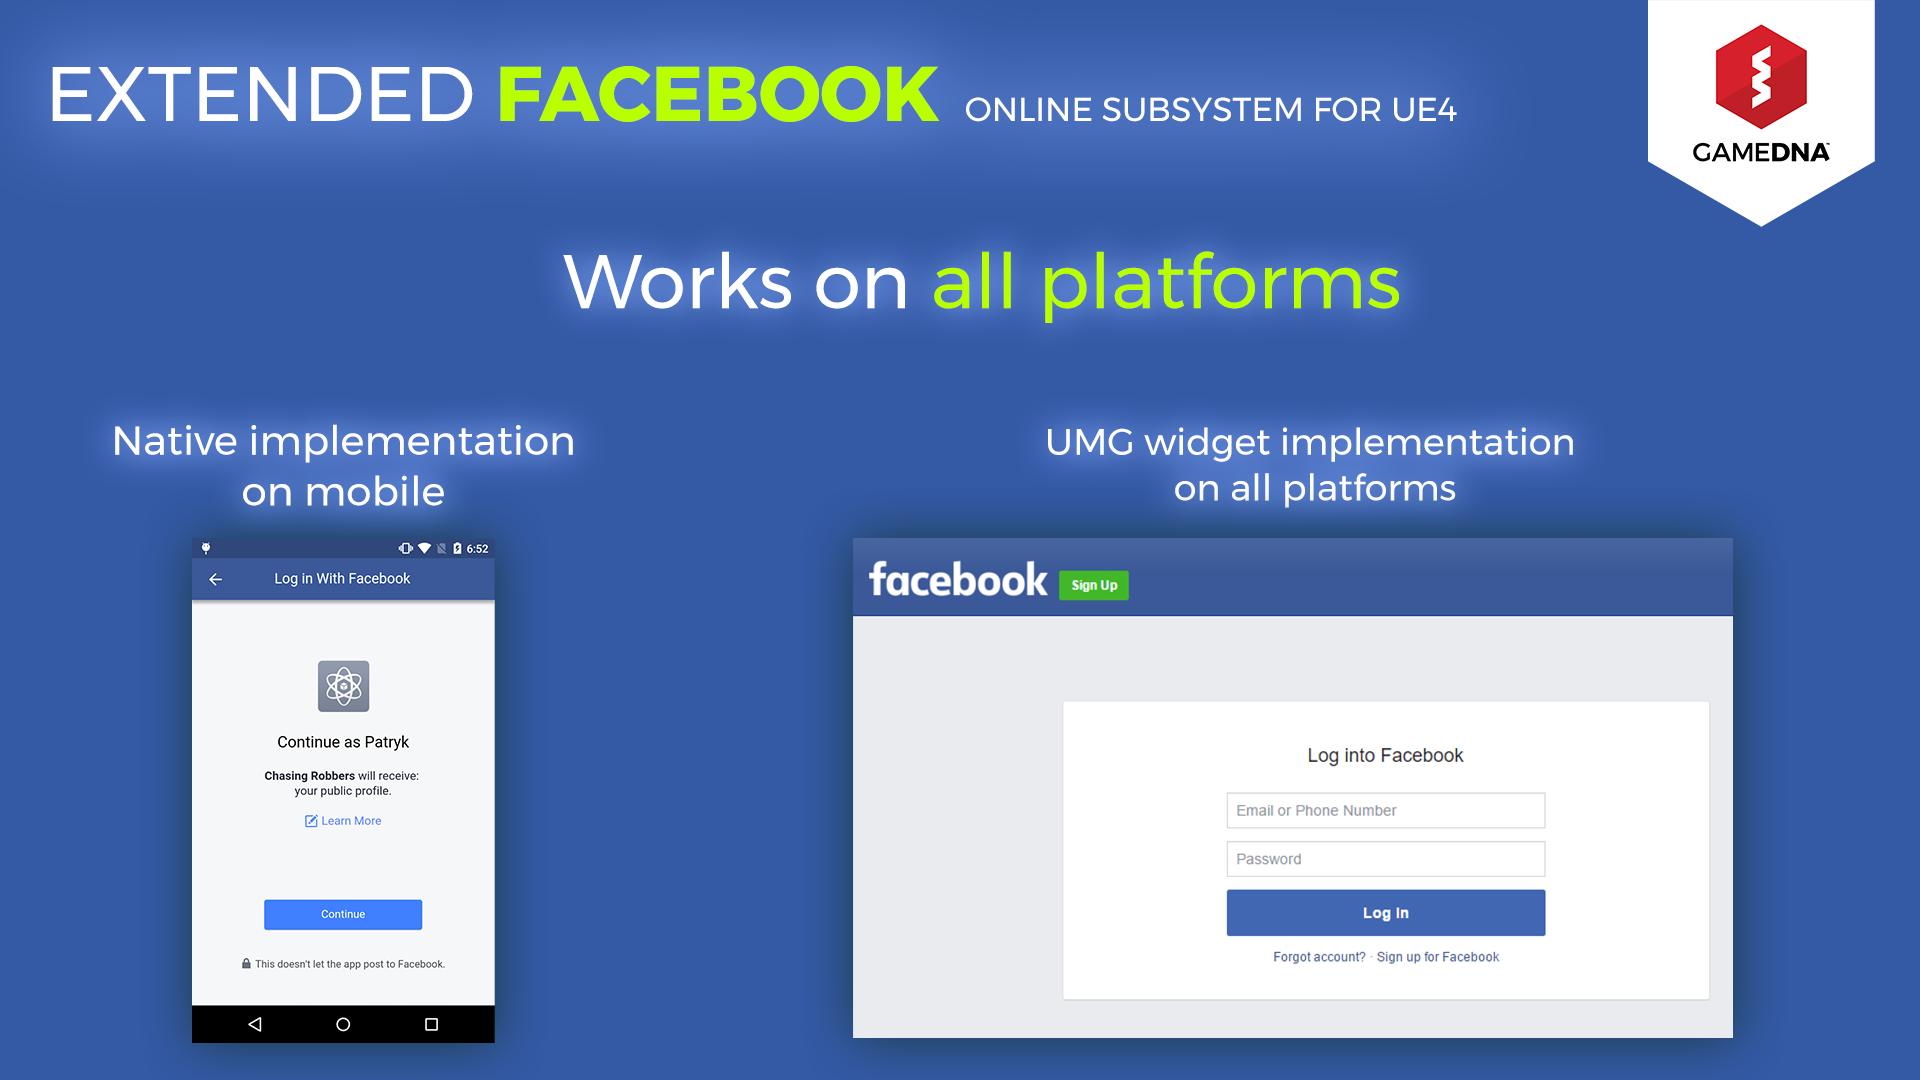 Continue with facebook sign up with email - Share